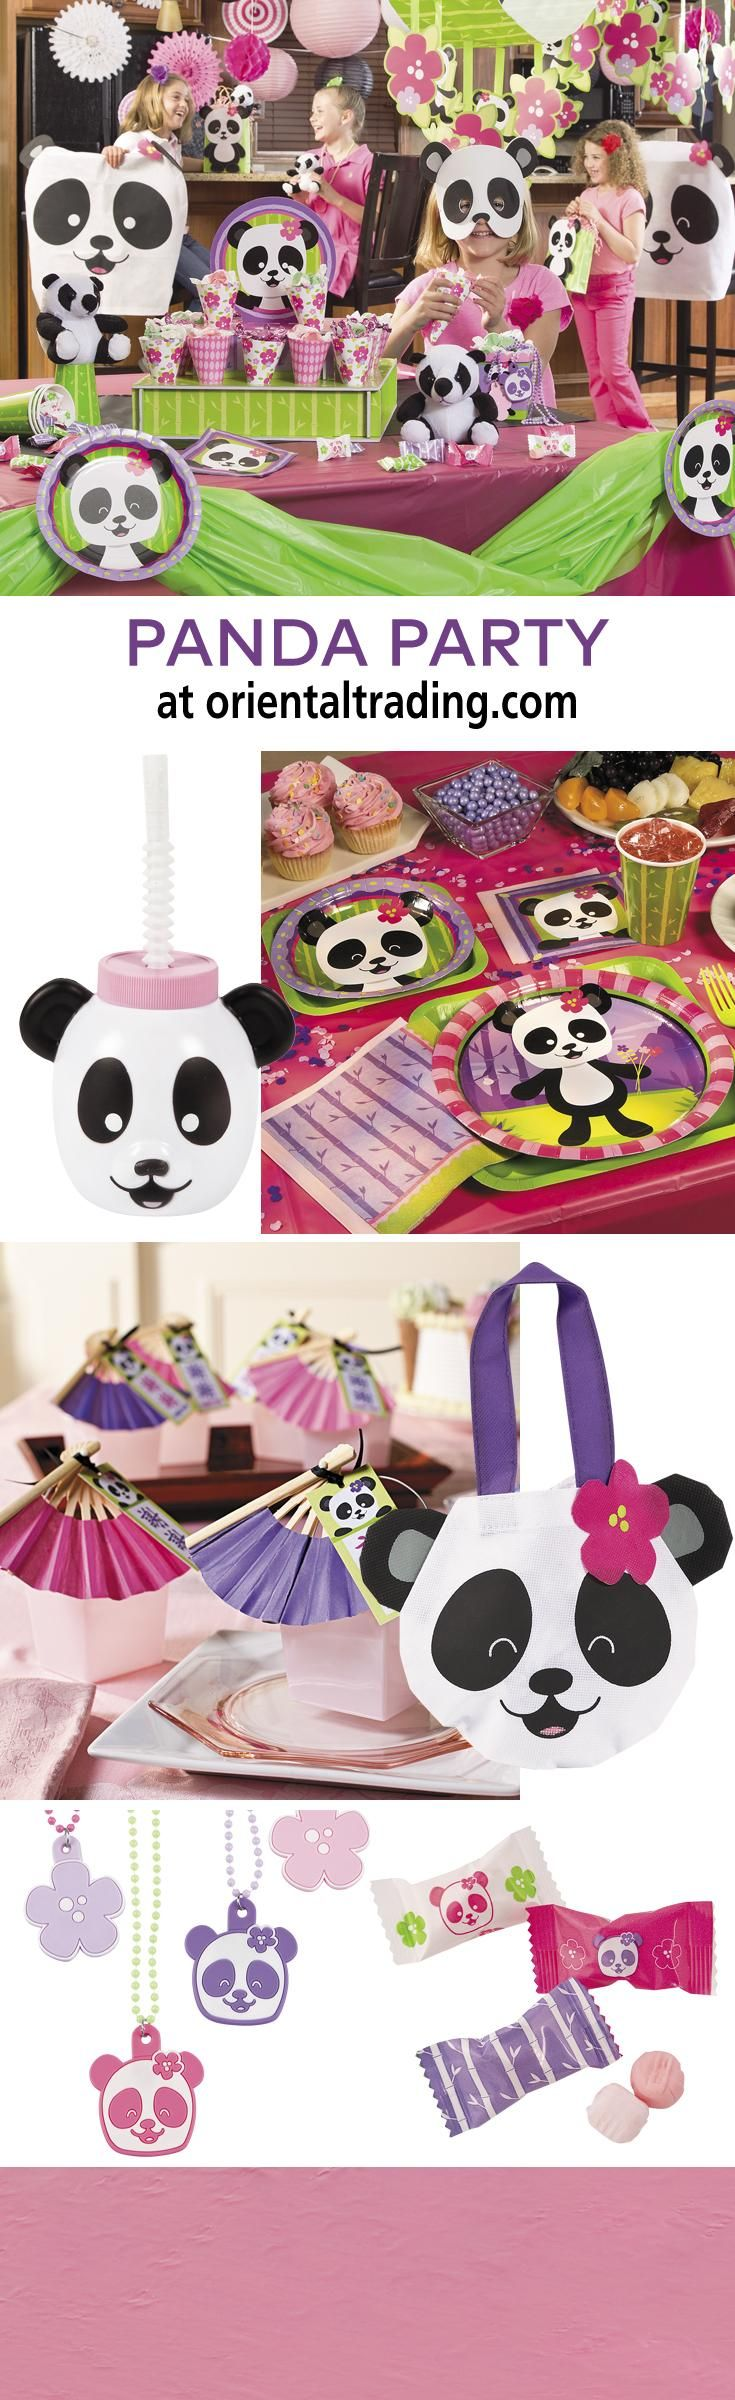 Panda Party | The birthday girl will have a wild time when you throw her a panda birthday party! You'll find everything from party decorations and tableware to fun panda party favors and more. #party